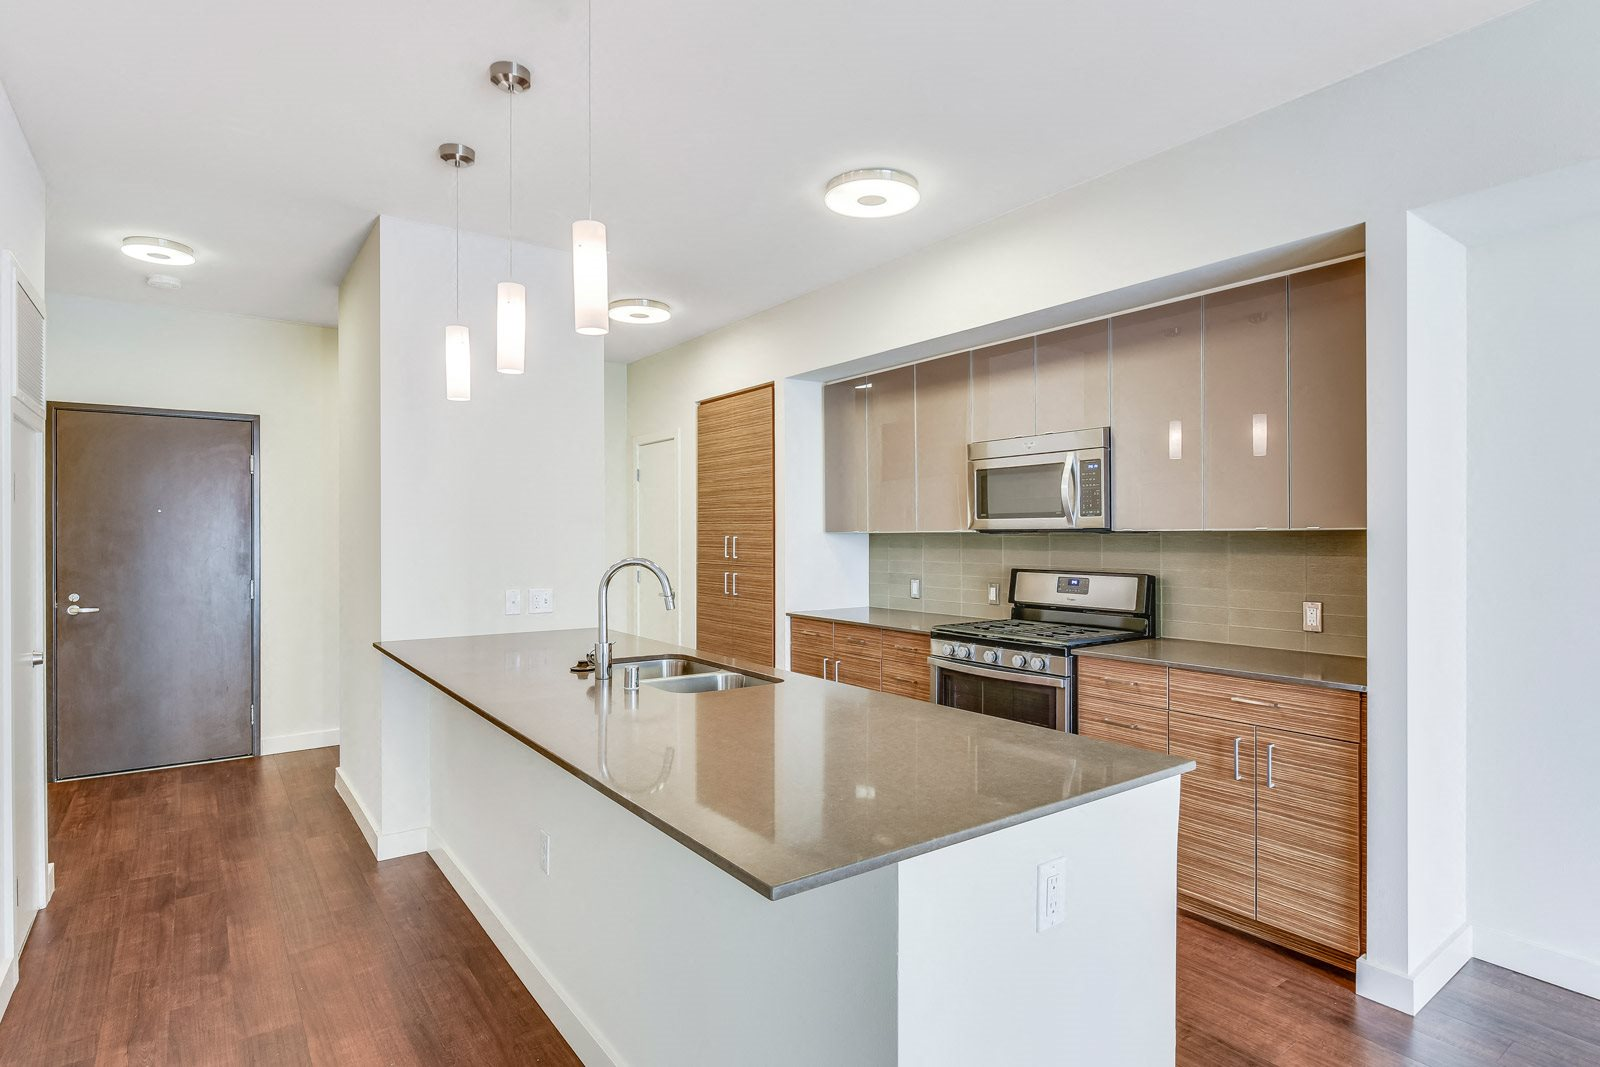 Expansive, Fully-Equipped Kitchen at The Martin, Washington, 98121